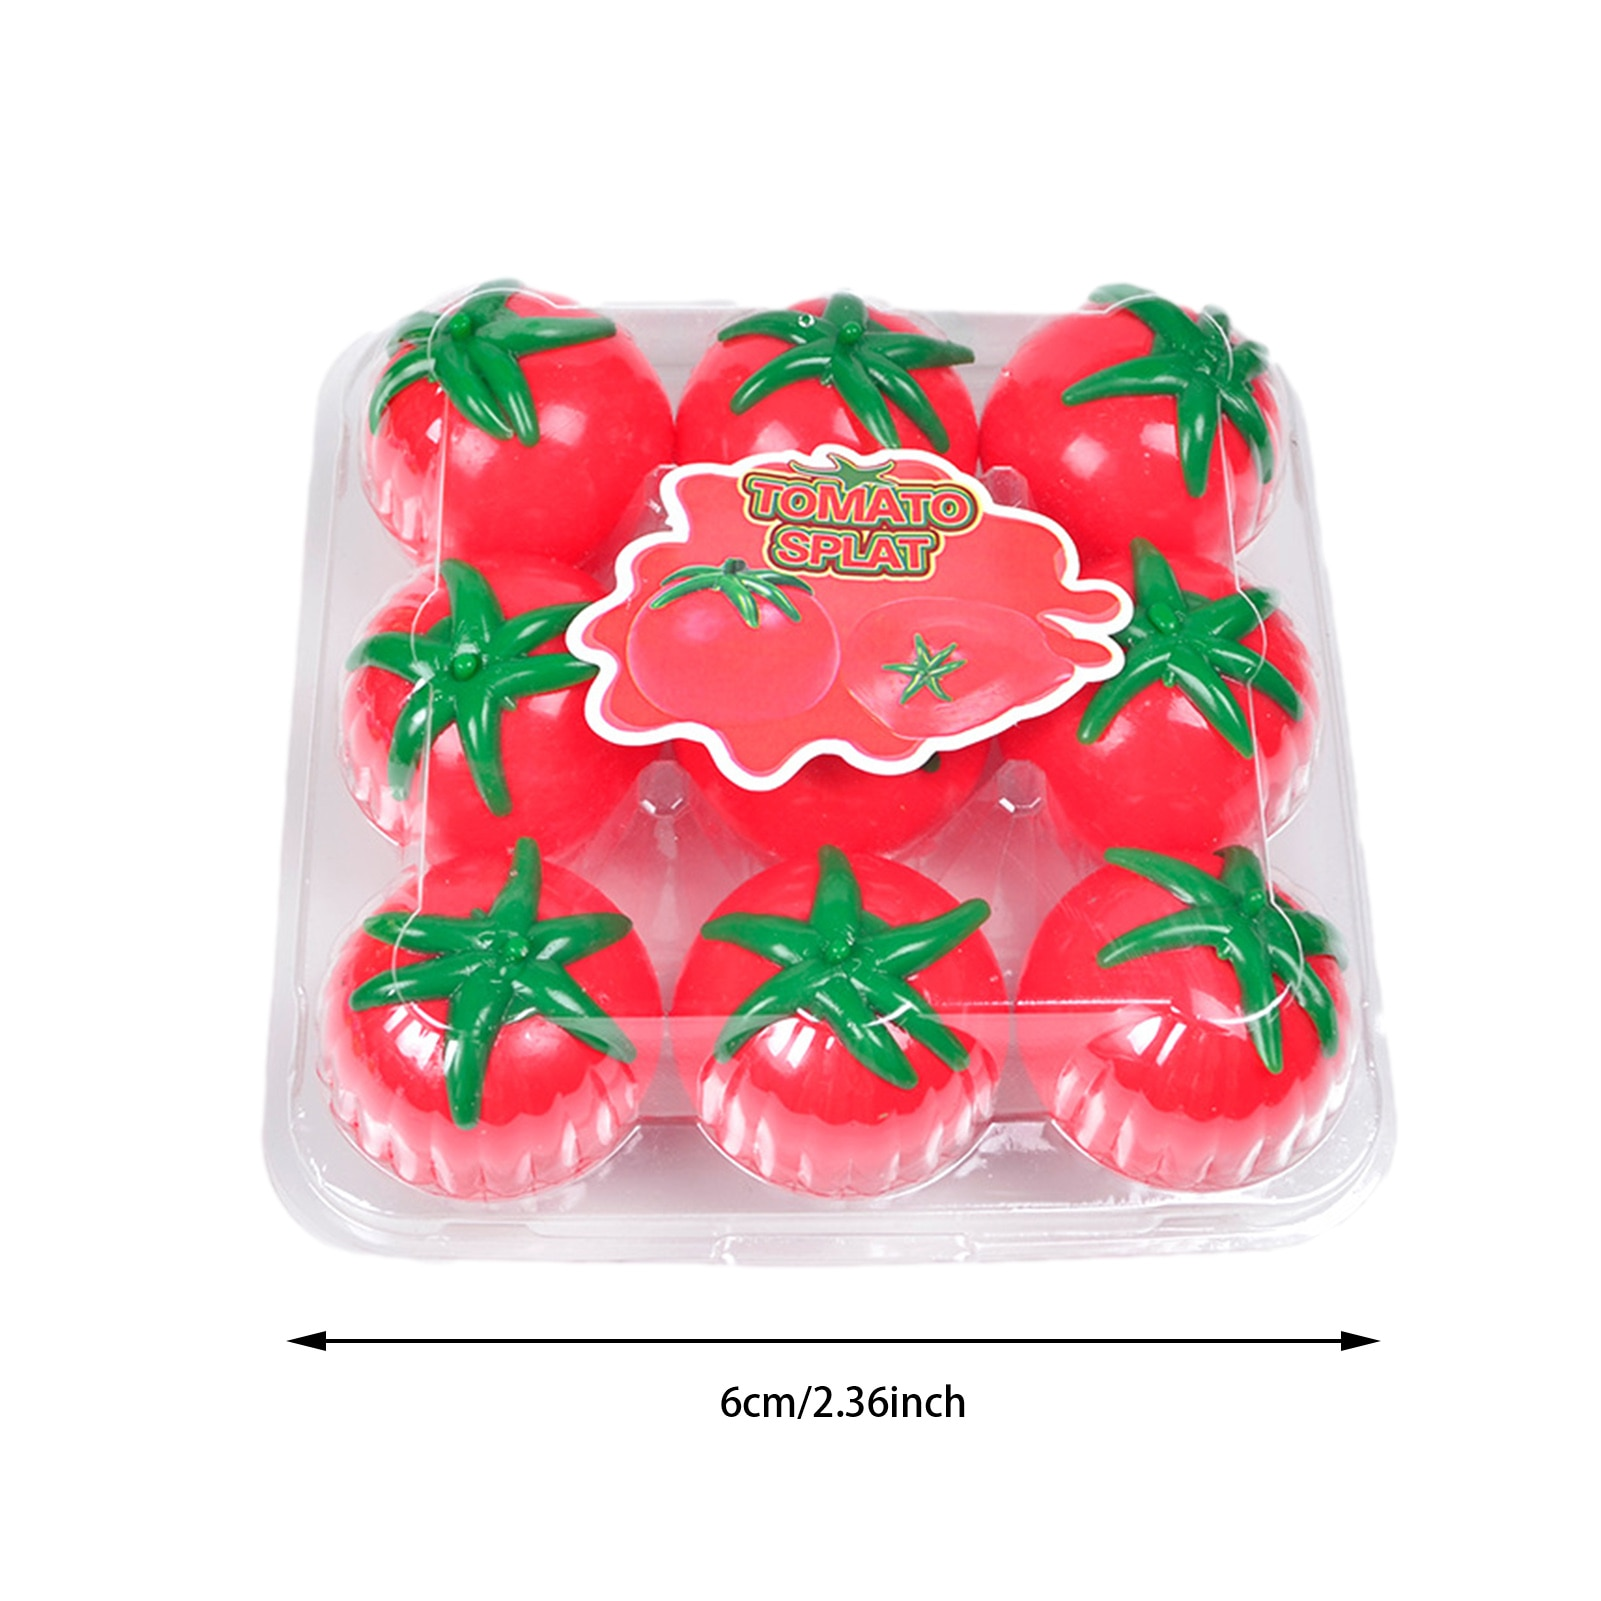 Sticky Tomato Squeeze Toy Fun Stress Reliever Toy For Kids Unbreakable Tomato Vent Water Ball Squeeze Toy enlarge